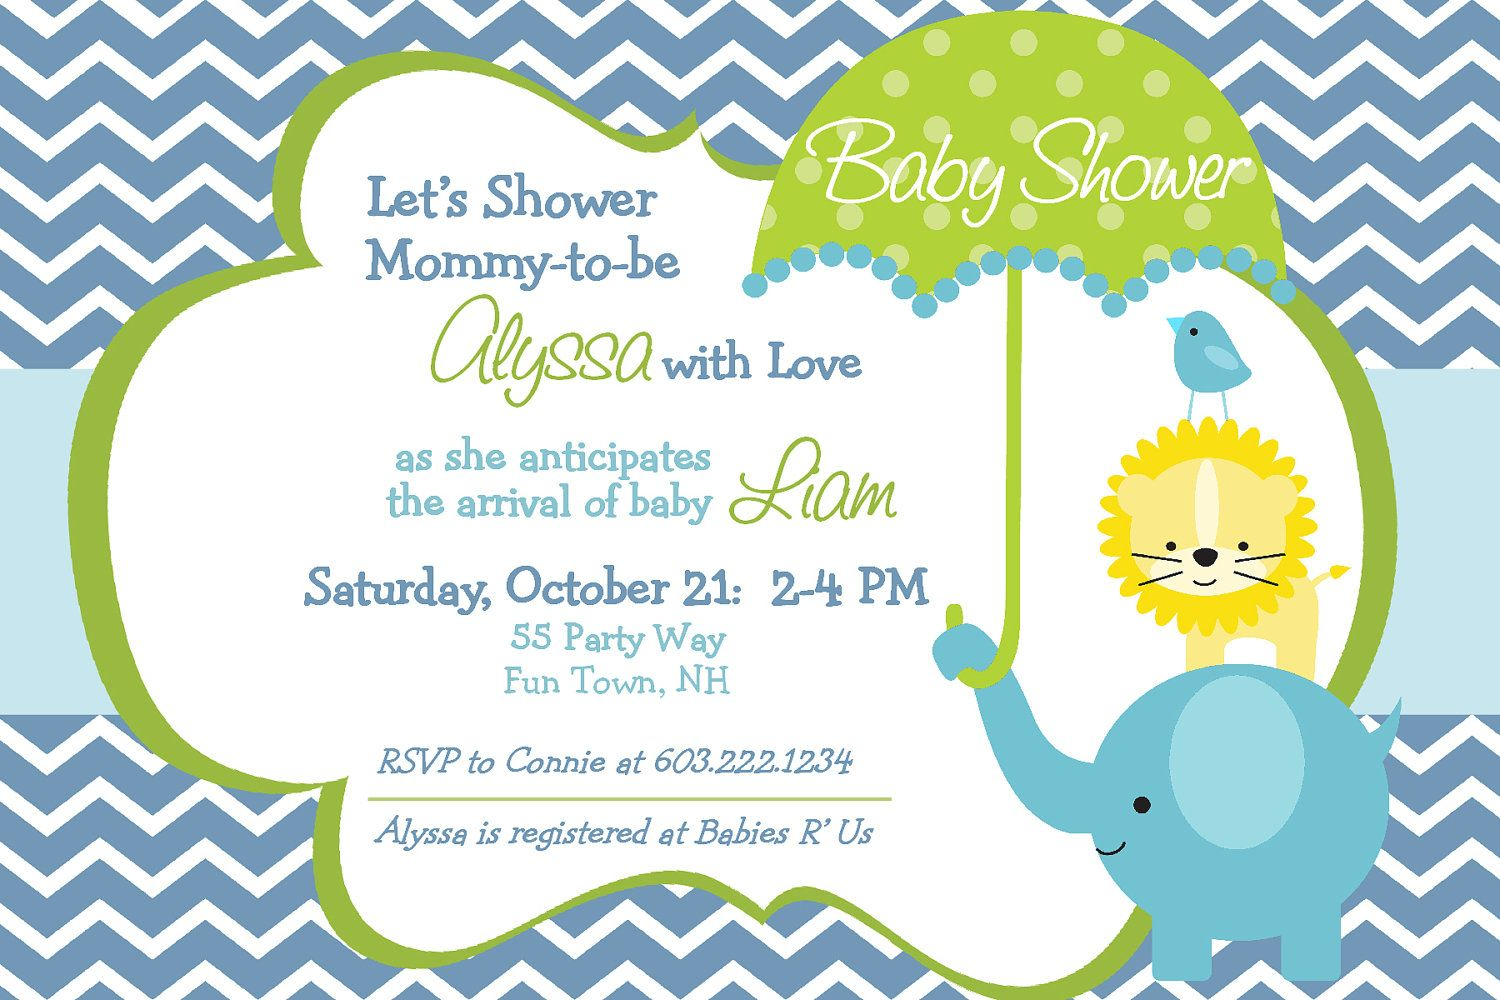 Baby Minnie Mouse Baby Shower Invitations | Minnie Mouse Baby Shower |  Pinterest | Minnie Mouse Baby Shower, Shower Invitations And Minnie Mouse